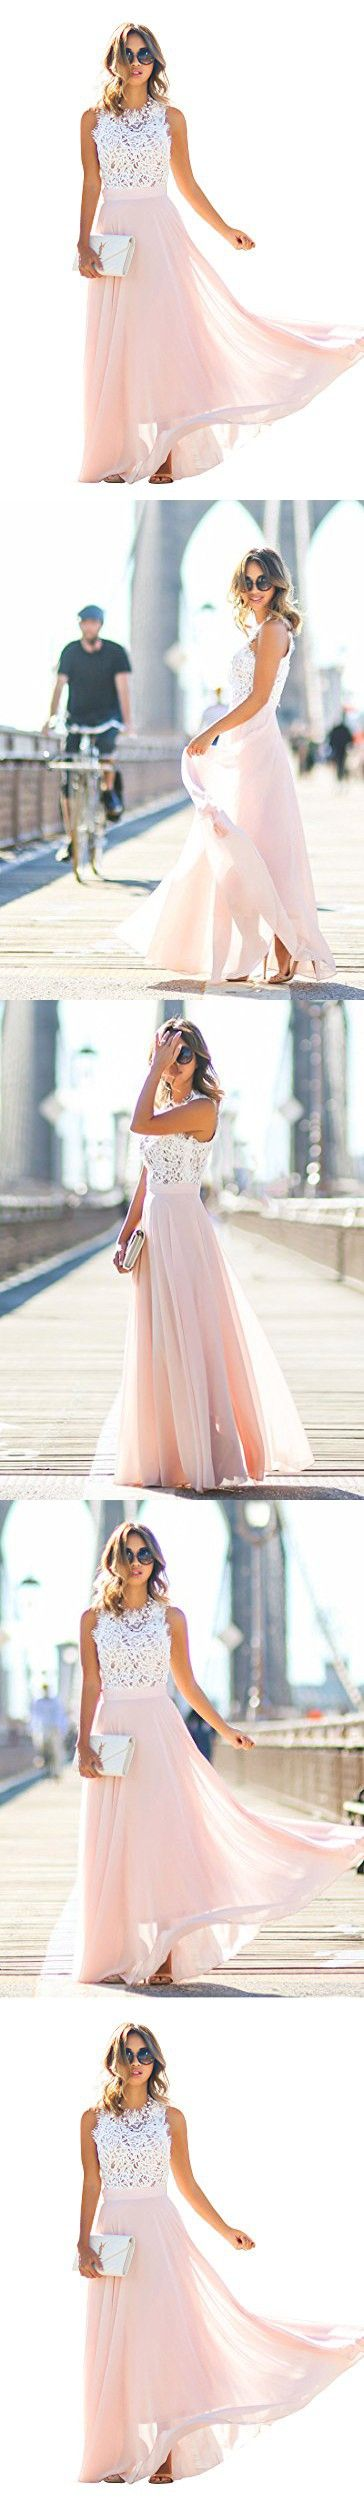 Doreen womens vintage chiffon party formal wedding prom gown maxi